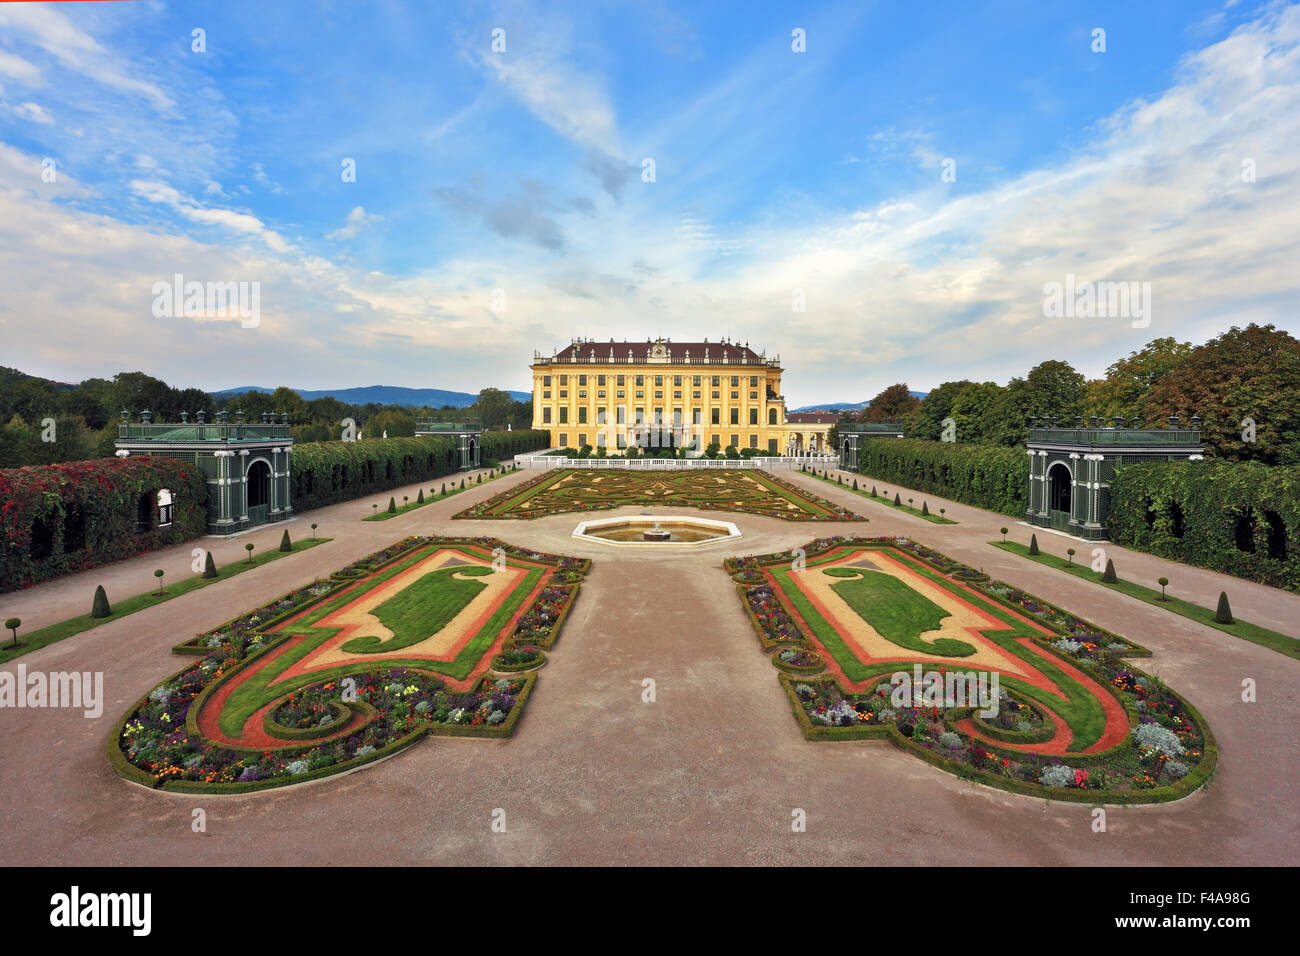 The residence of the Austrian Habsburgs - Stock Image